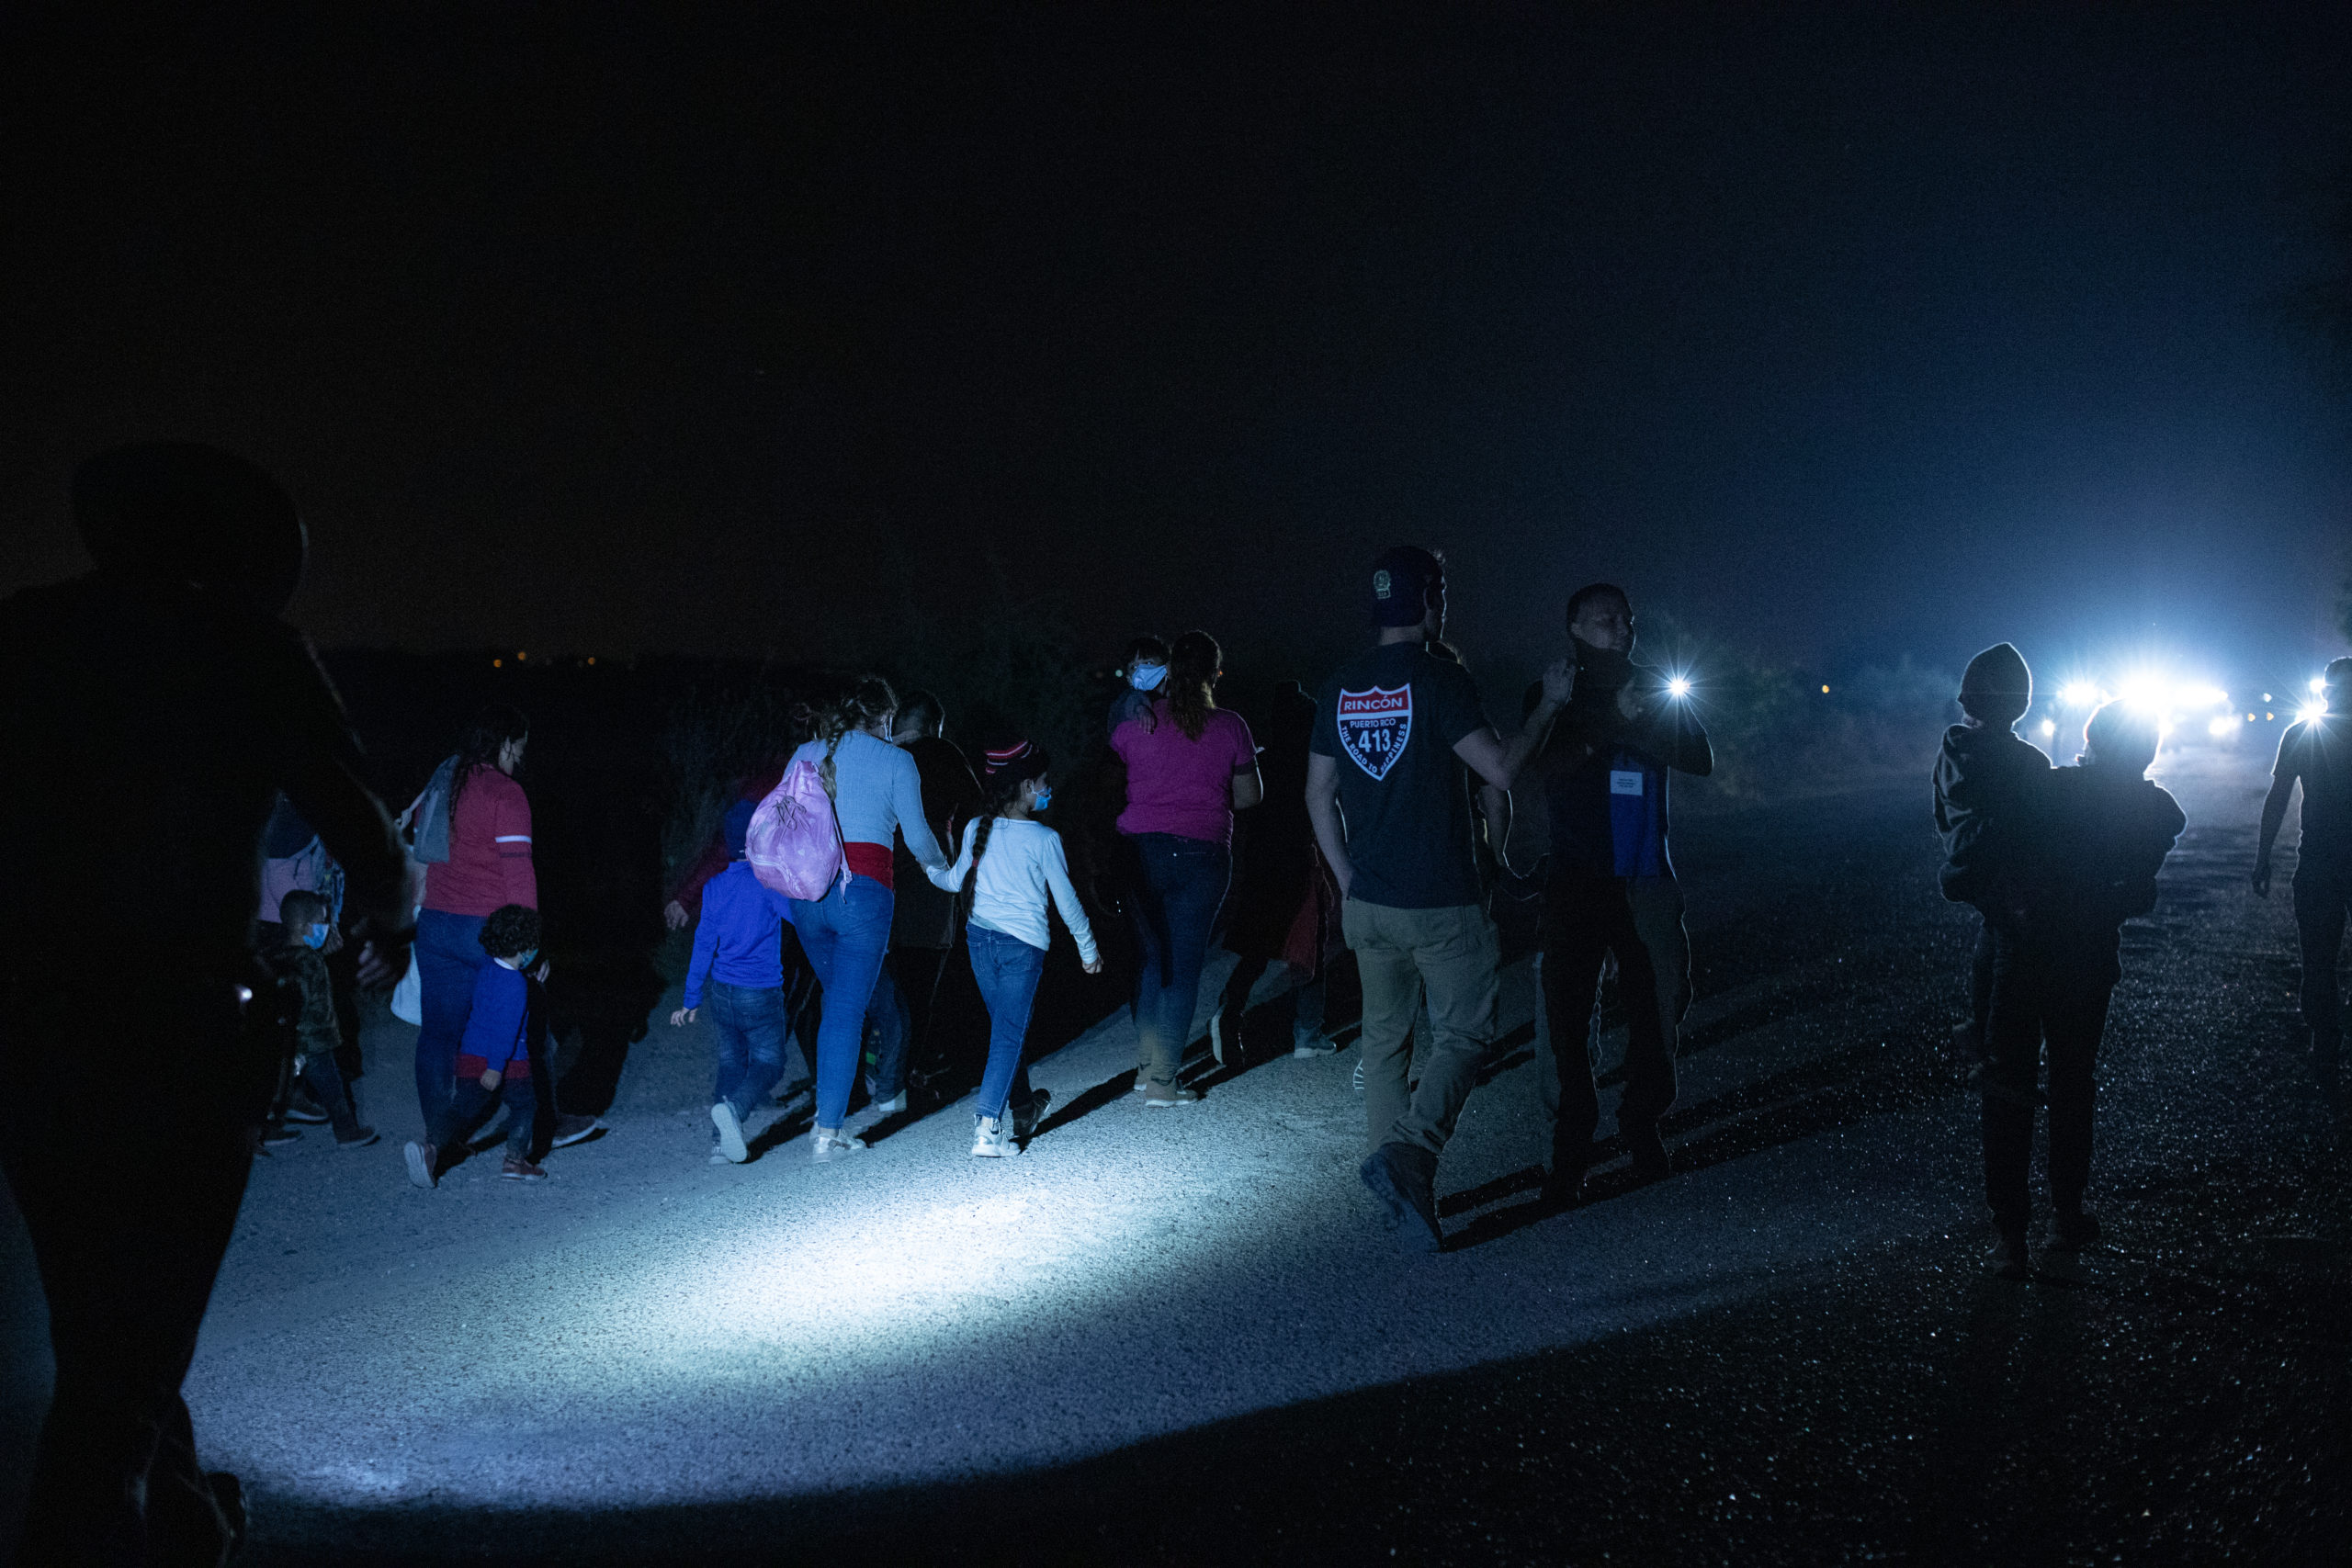 Illegal migrants wait on the side of a public road to be processed and taken to Customs and Border Protection facilities in La Joya, Texas on March 25, 2021. (Kaylee Greenlee - Daily Caller News Foundation)